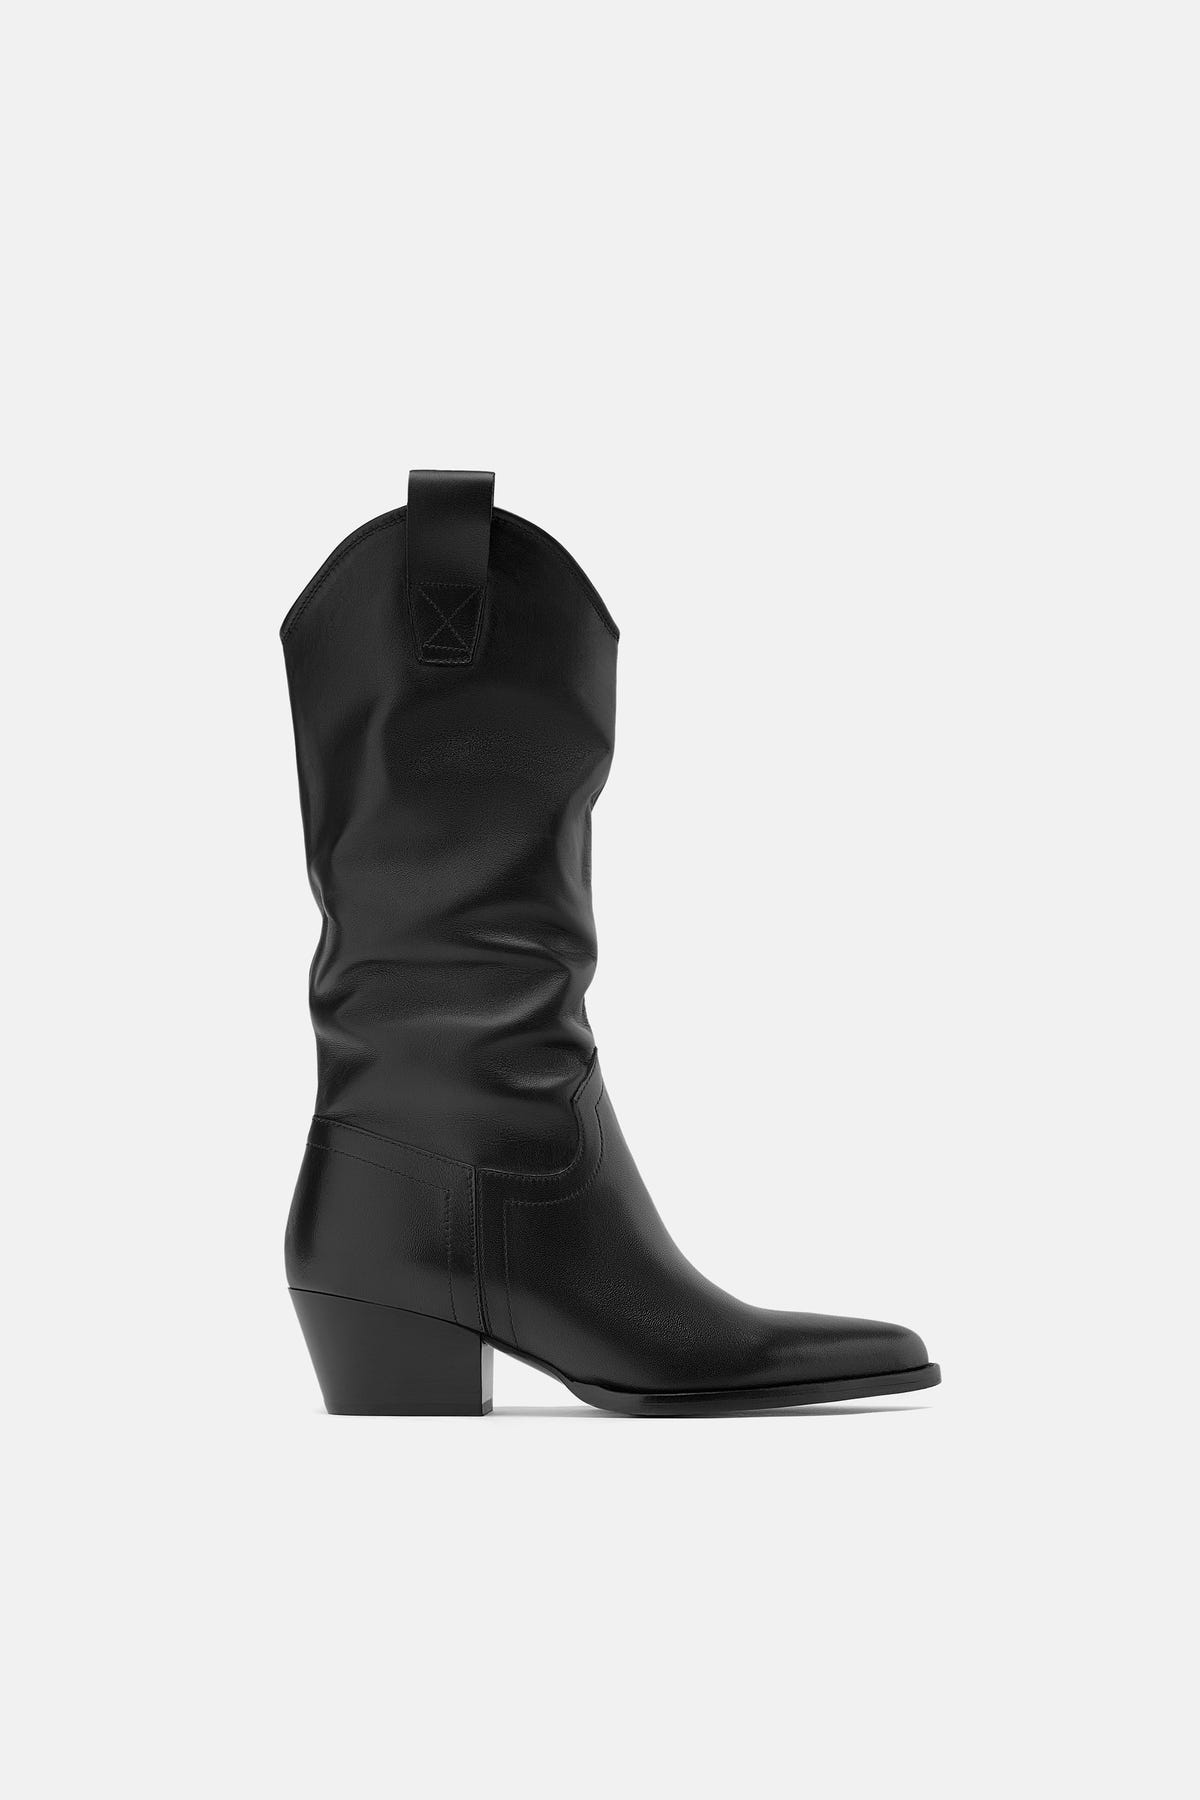 f1e4ef0710a Womens Boots Trends - Best Winter 2019 Boot Styles